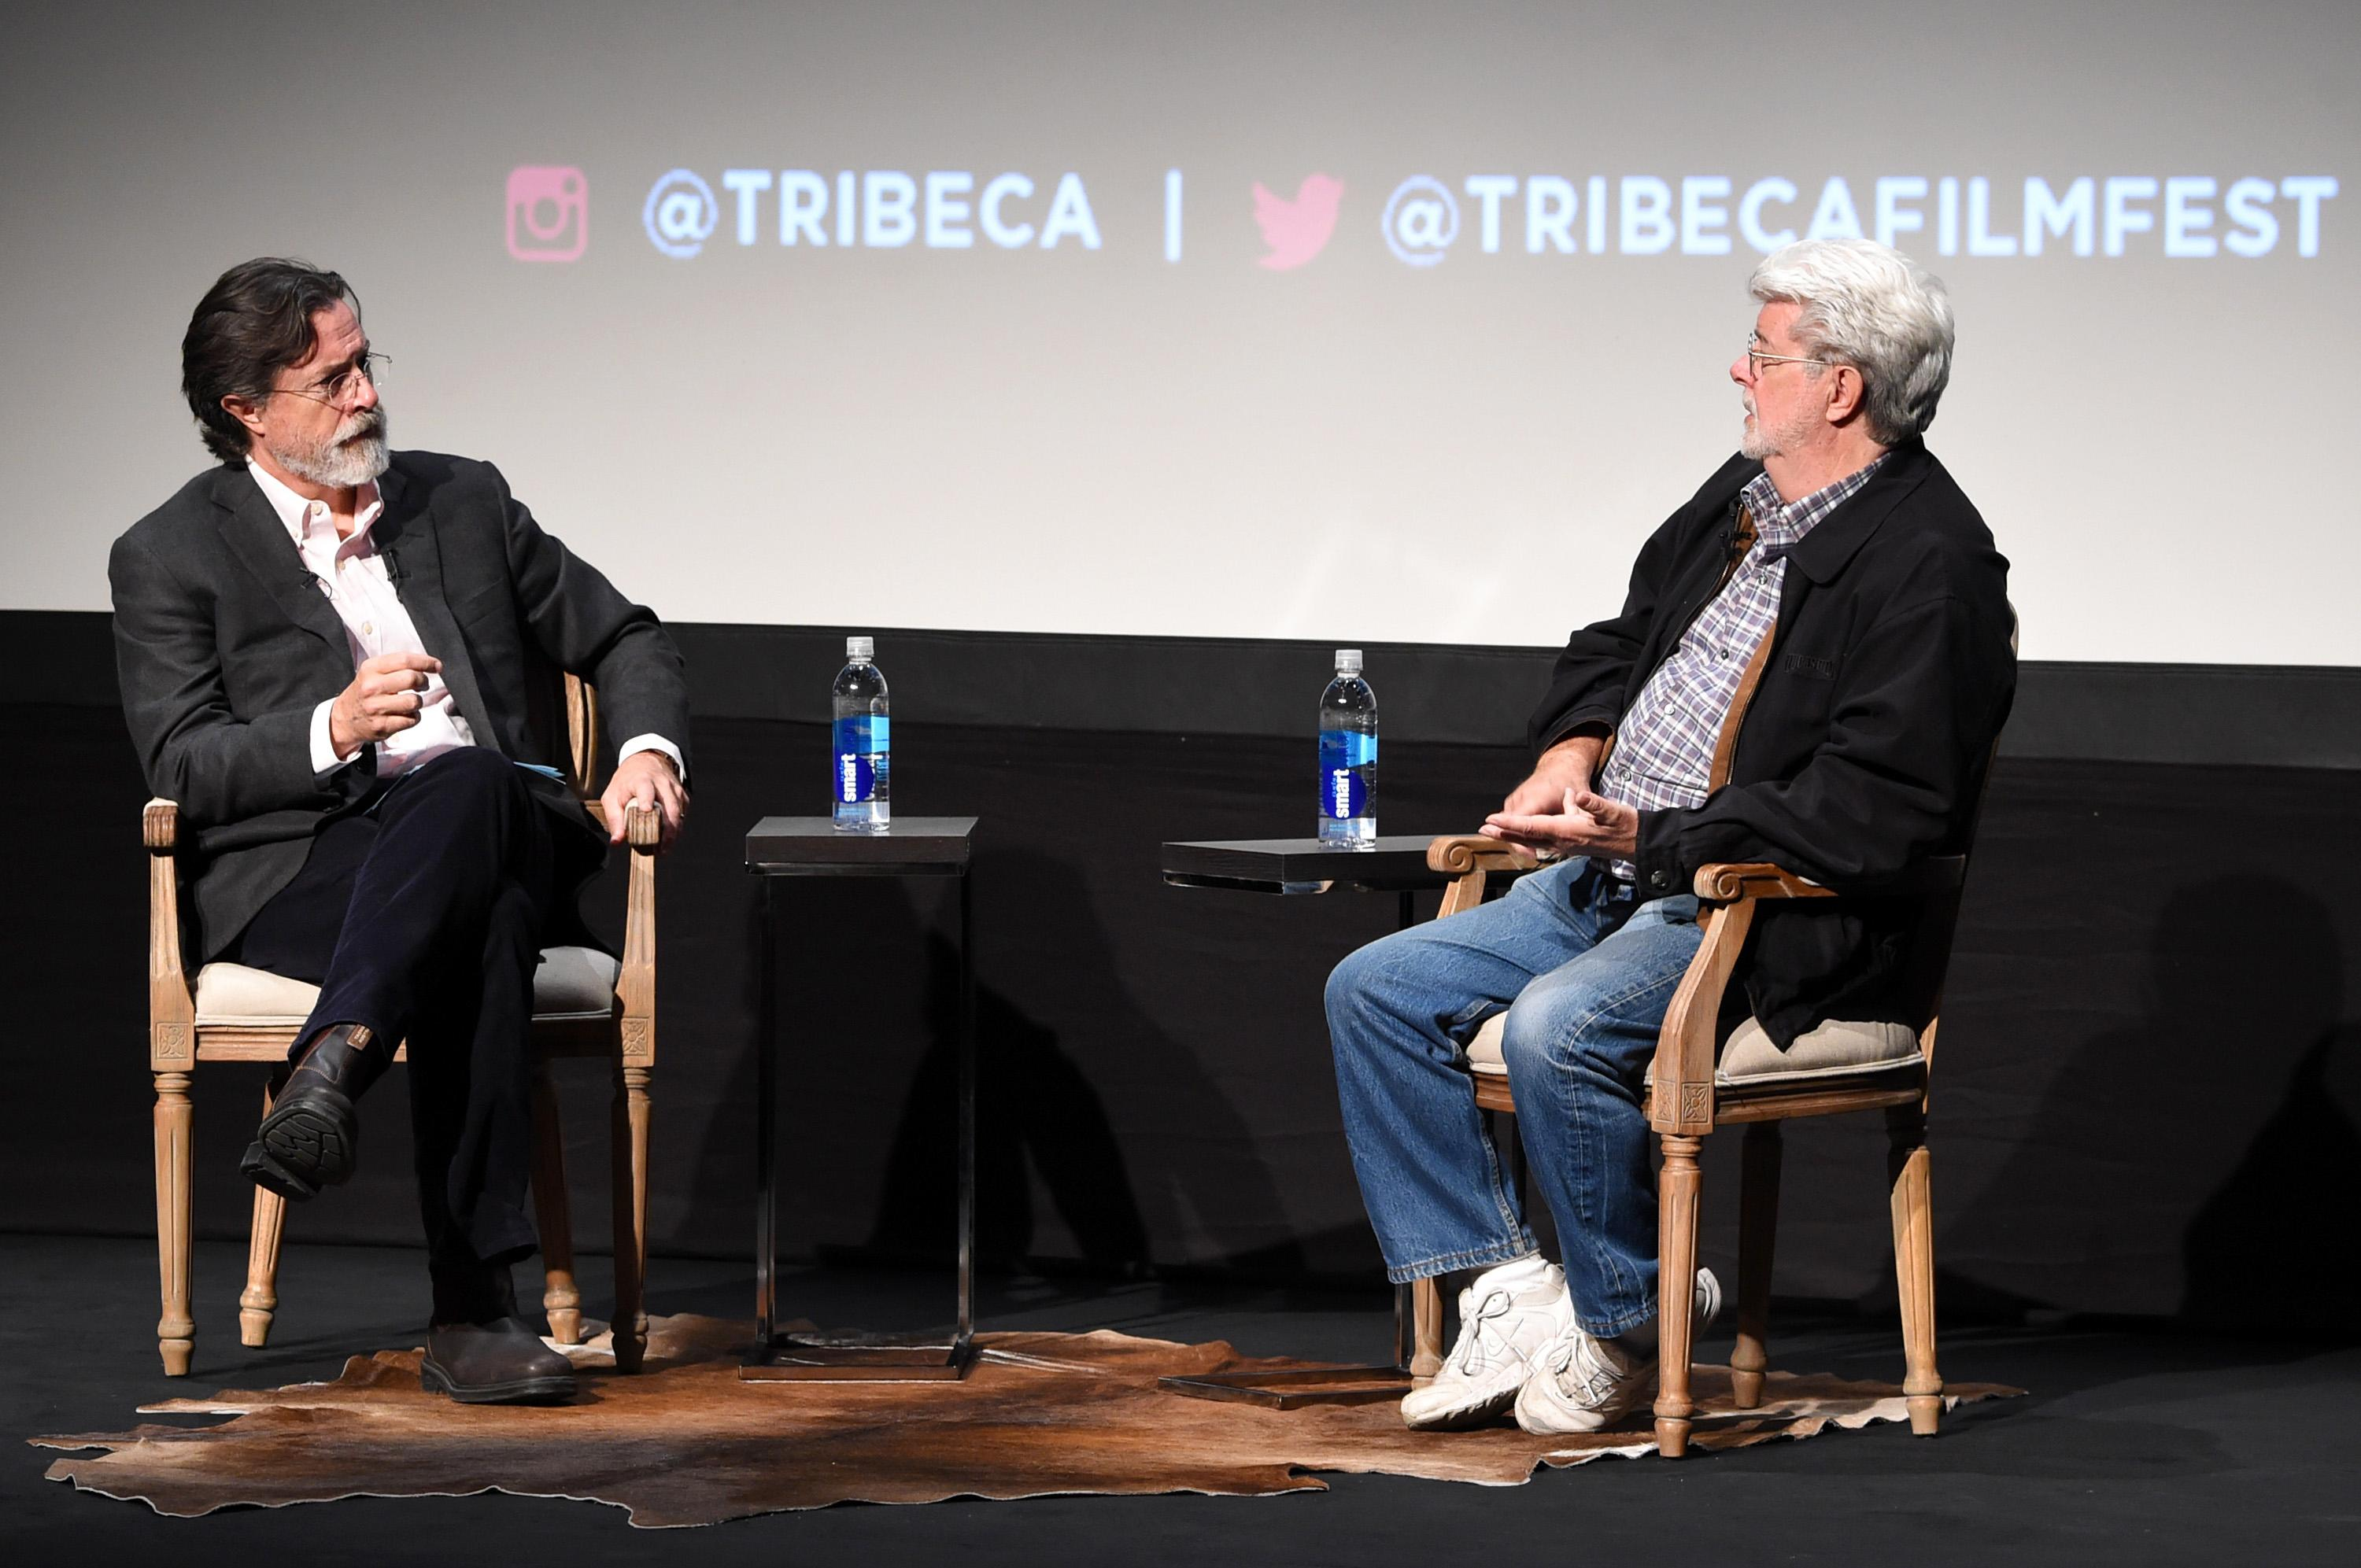 """'Late Show' Warmup At Tribeca? Colbert Tells Lucas """"I'm Not The Guy To Take Over For Jon Stewart"""""""